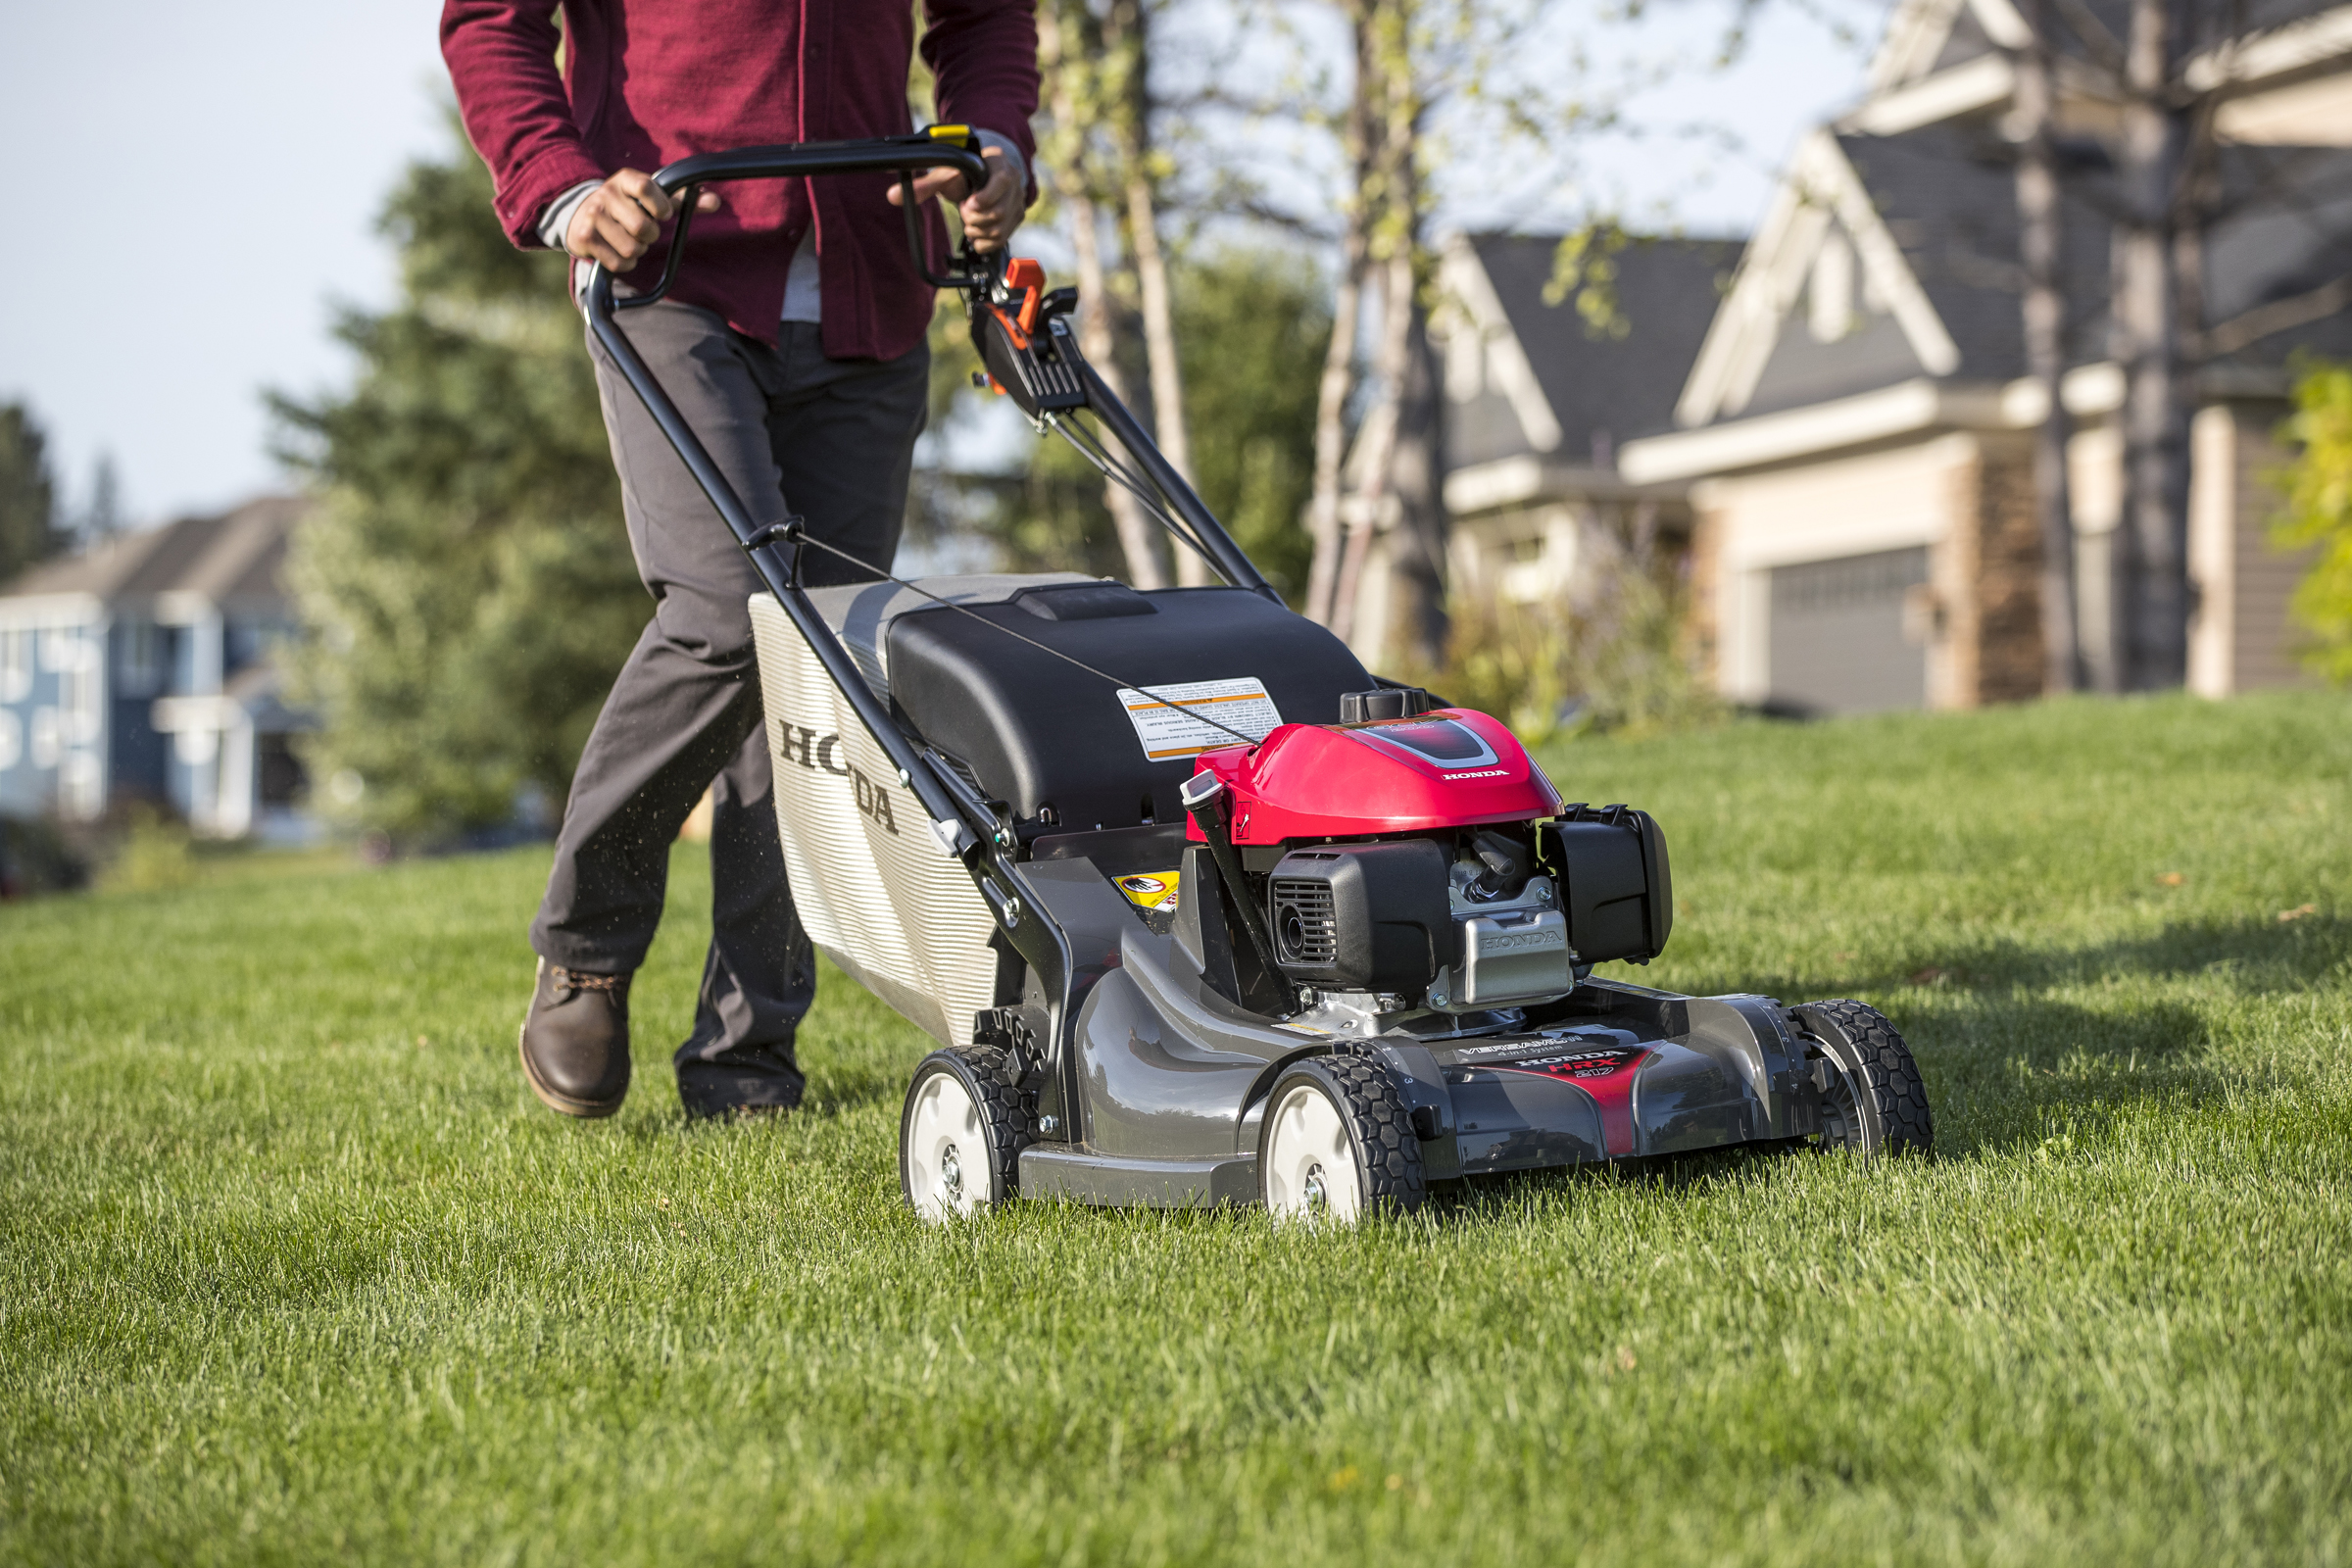 Redesigned Honda Hrx Premium Lawn Mower Lineup Delivers More